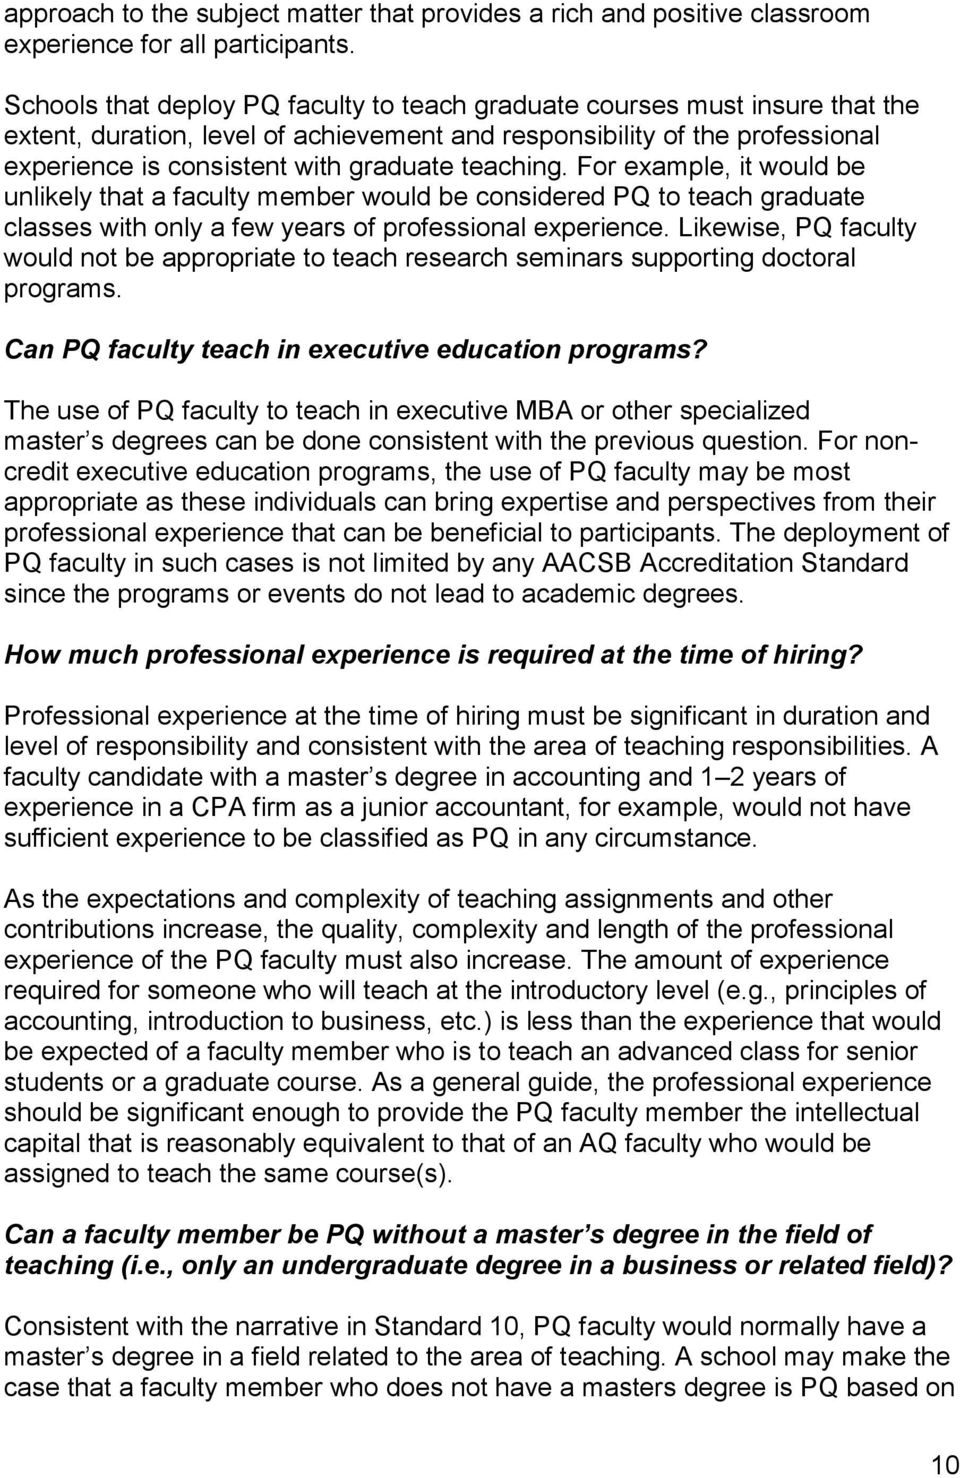 teaching. For example, it would be unlikely that a faculty member would be considered PQ to teach graduate classes with only a few years of professional experience.